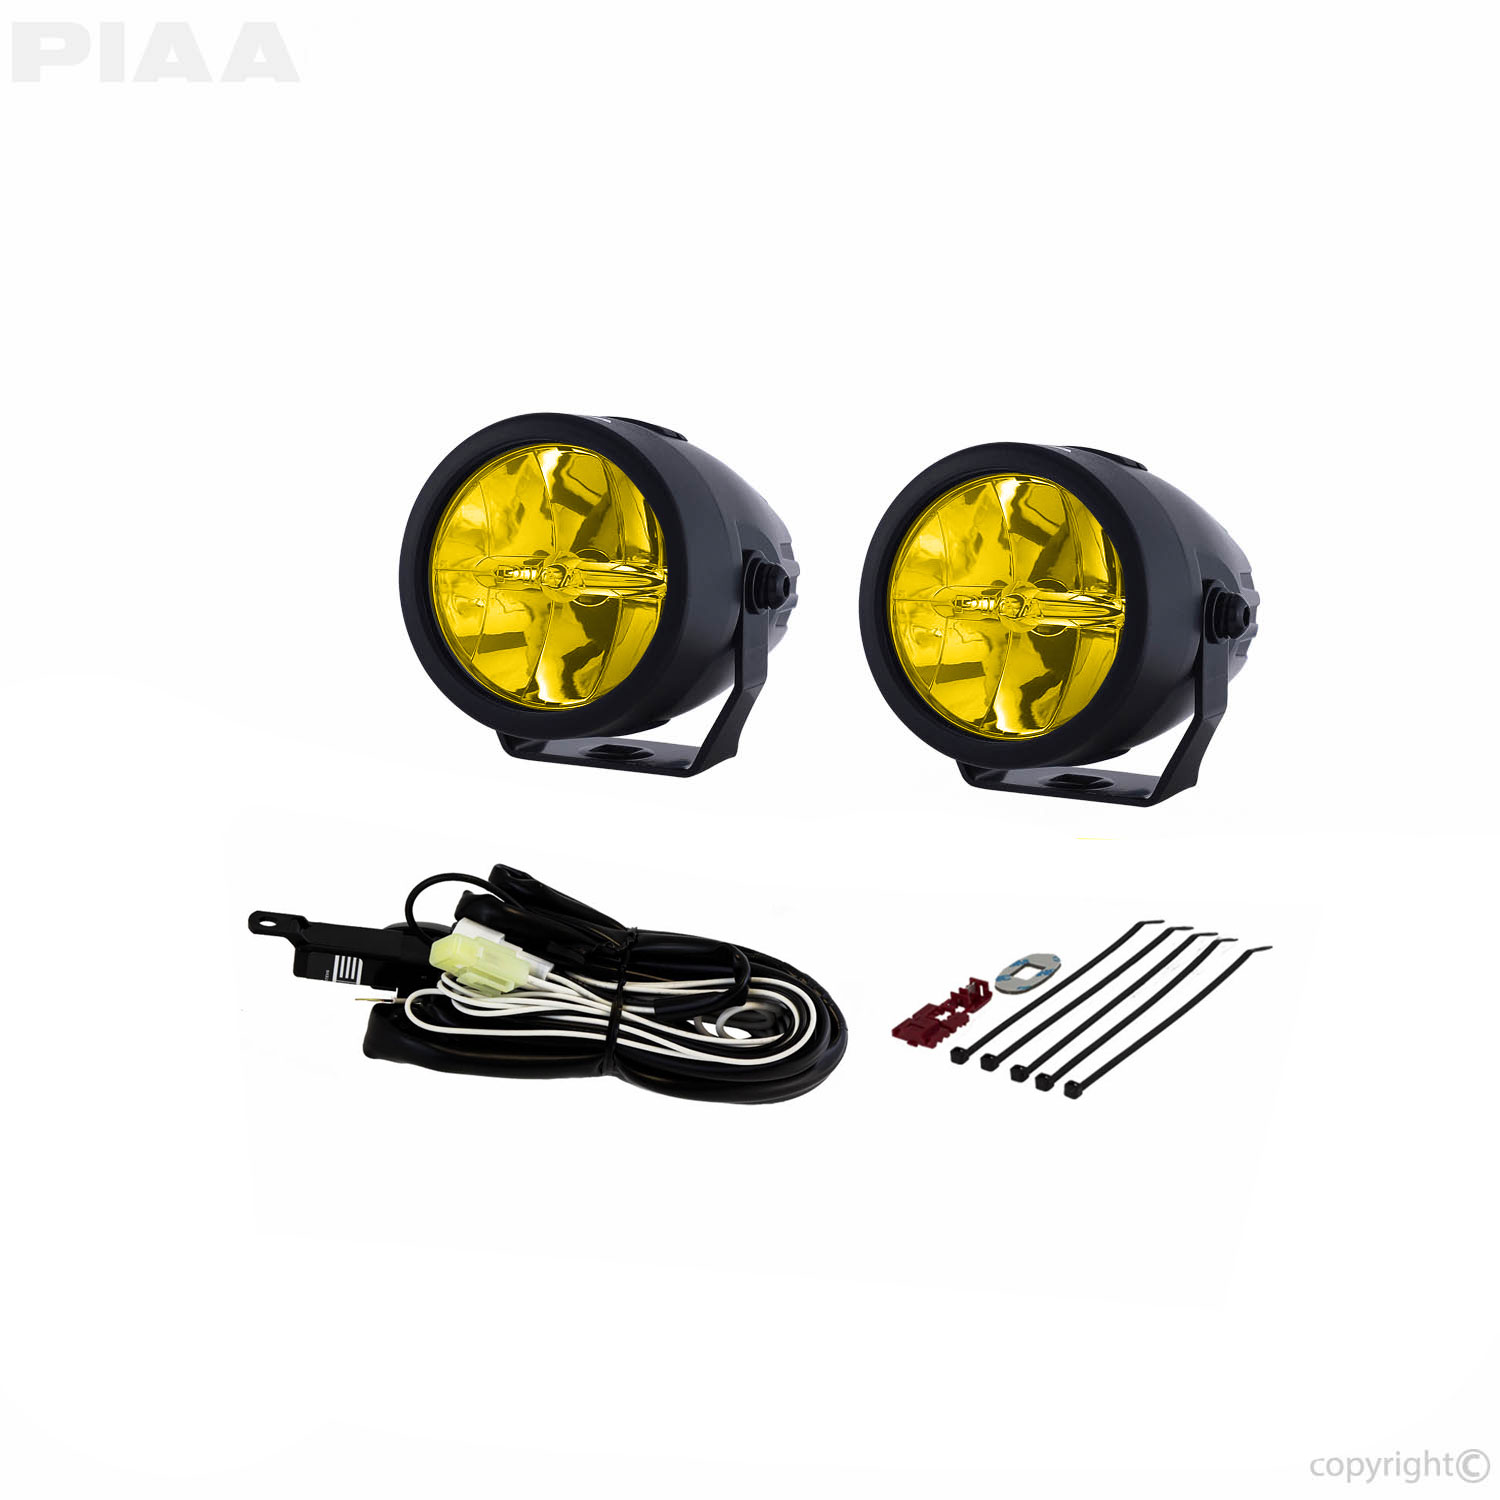 piaa 22 02772 lp270 led contents?bw=1000&w=1000&bh=1000&h=1000 piaa led lights for yamaha motorcycles High Intensity LED Driving Lights at edmiracle.co